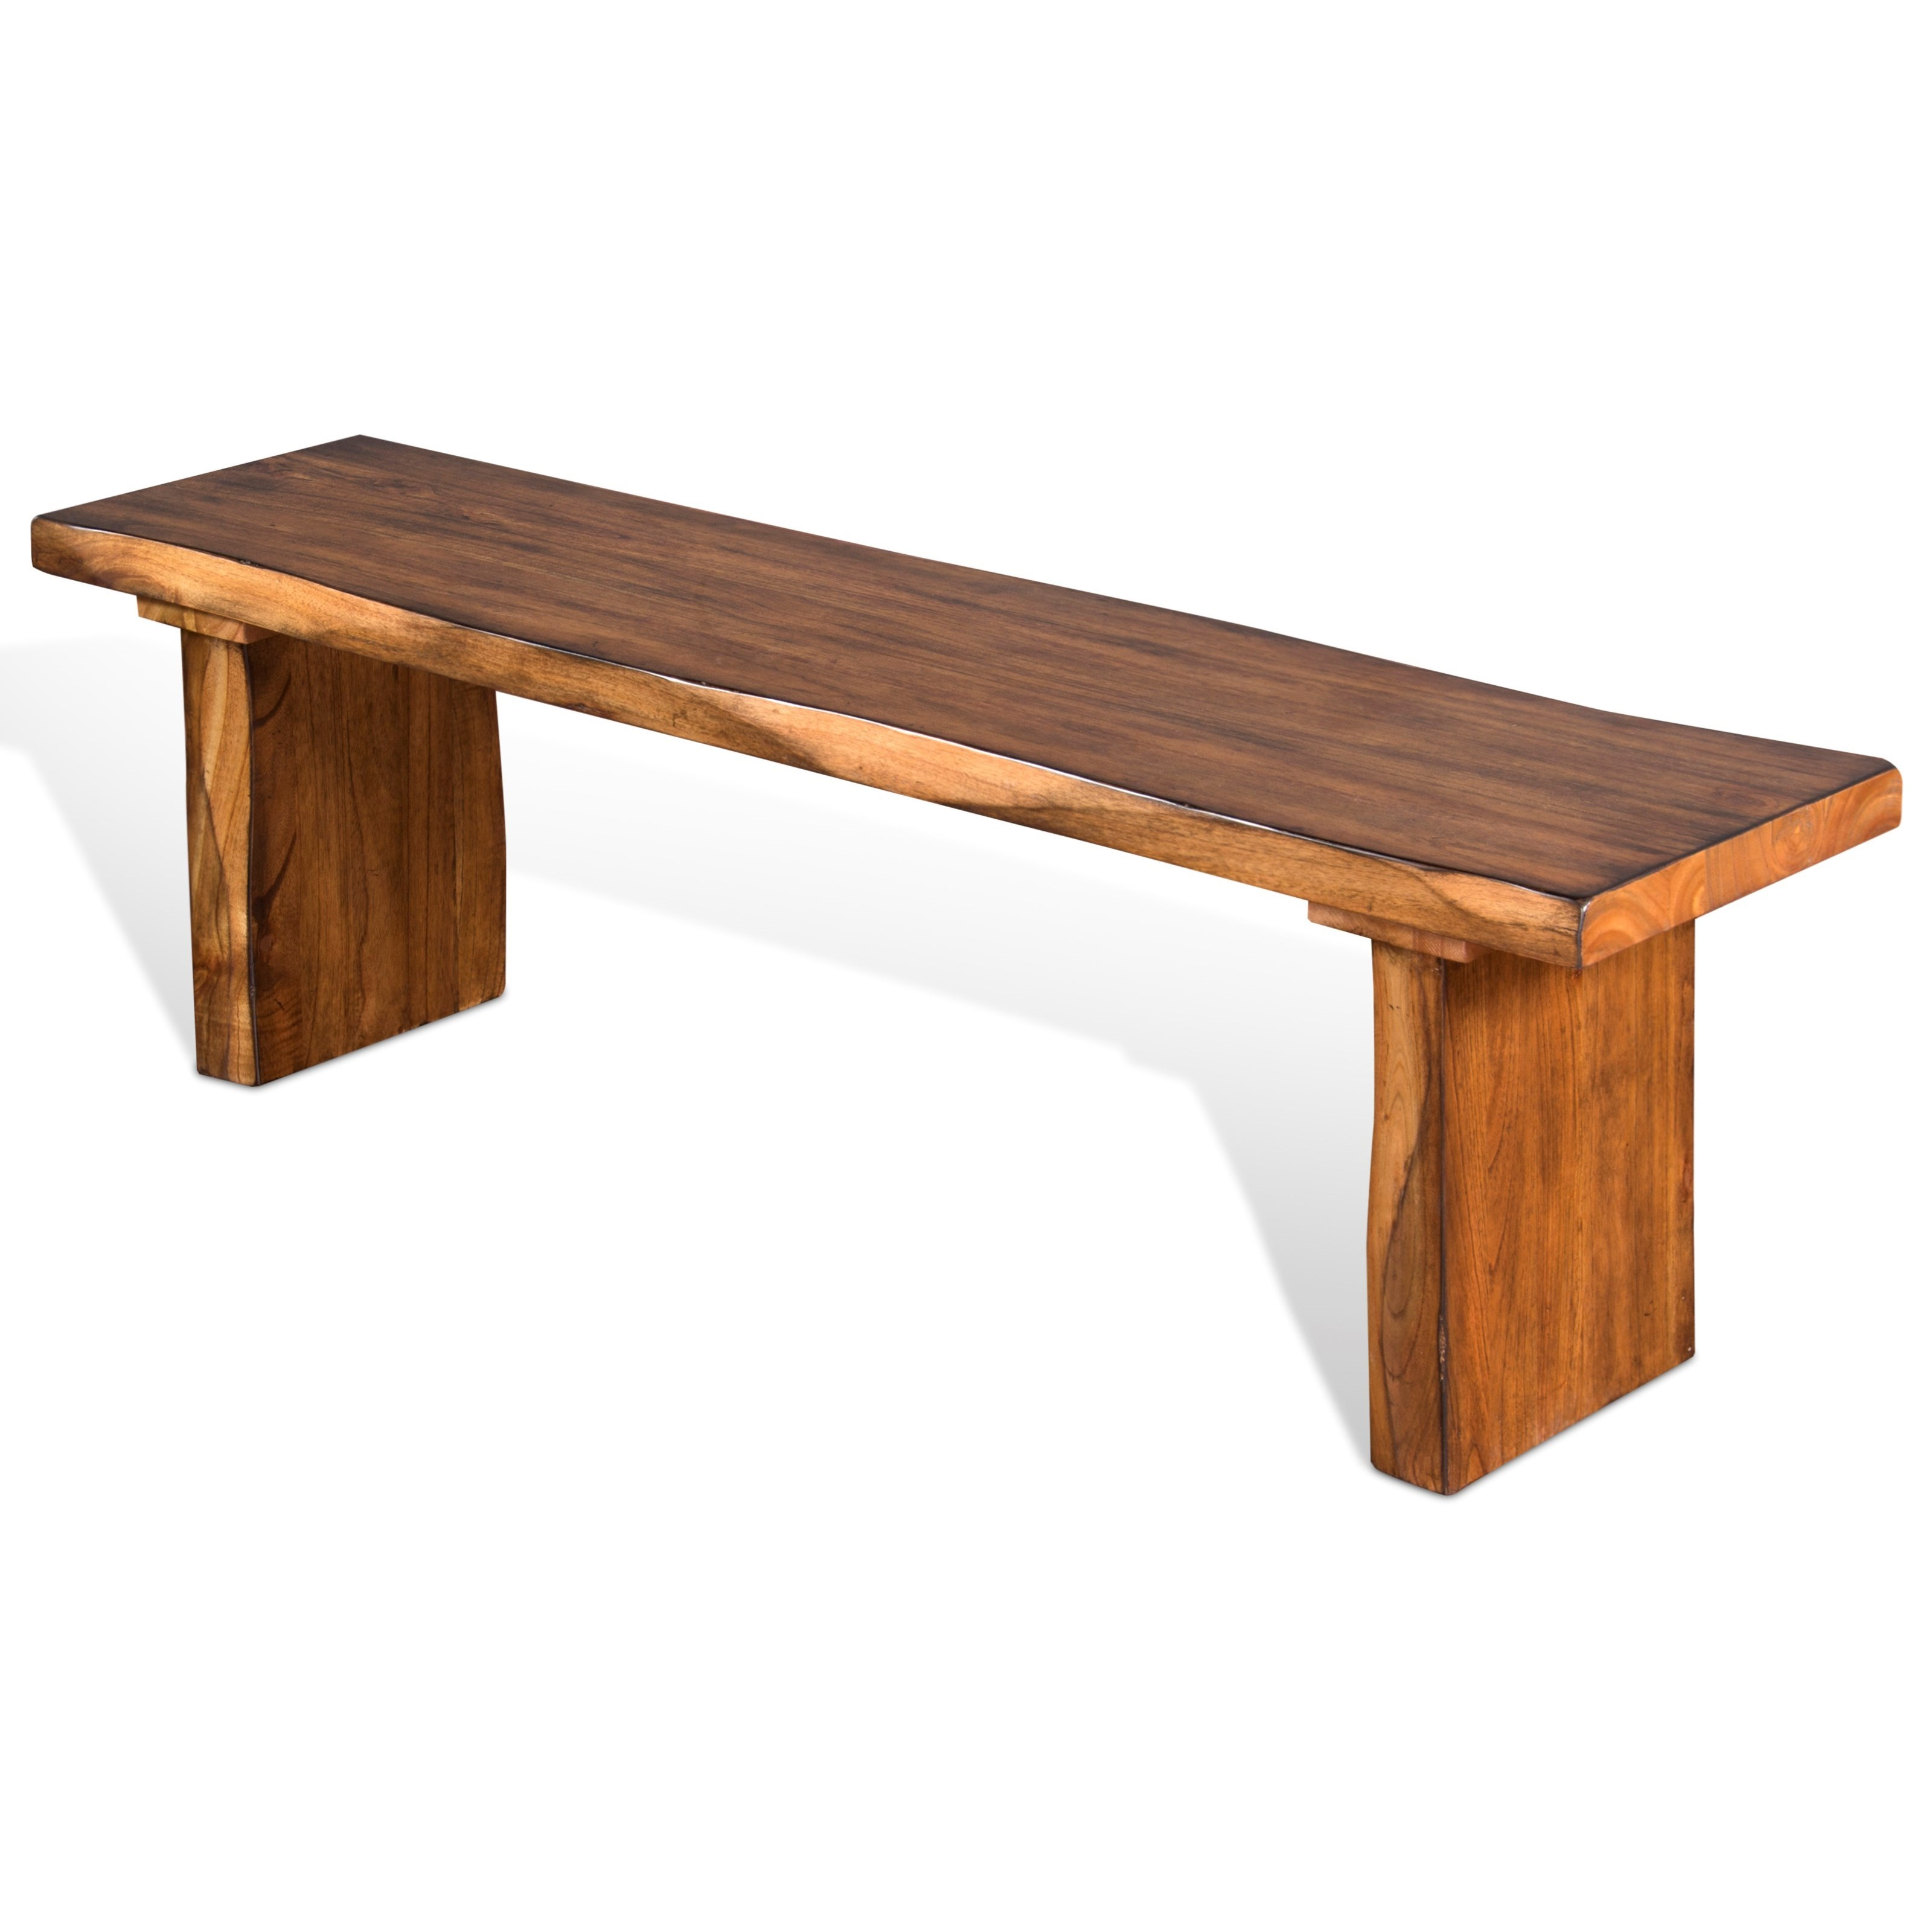 Sunny Designs Carey Live Edge Dining Bench - Item Number: 1617NW